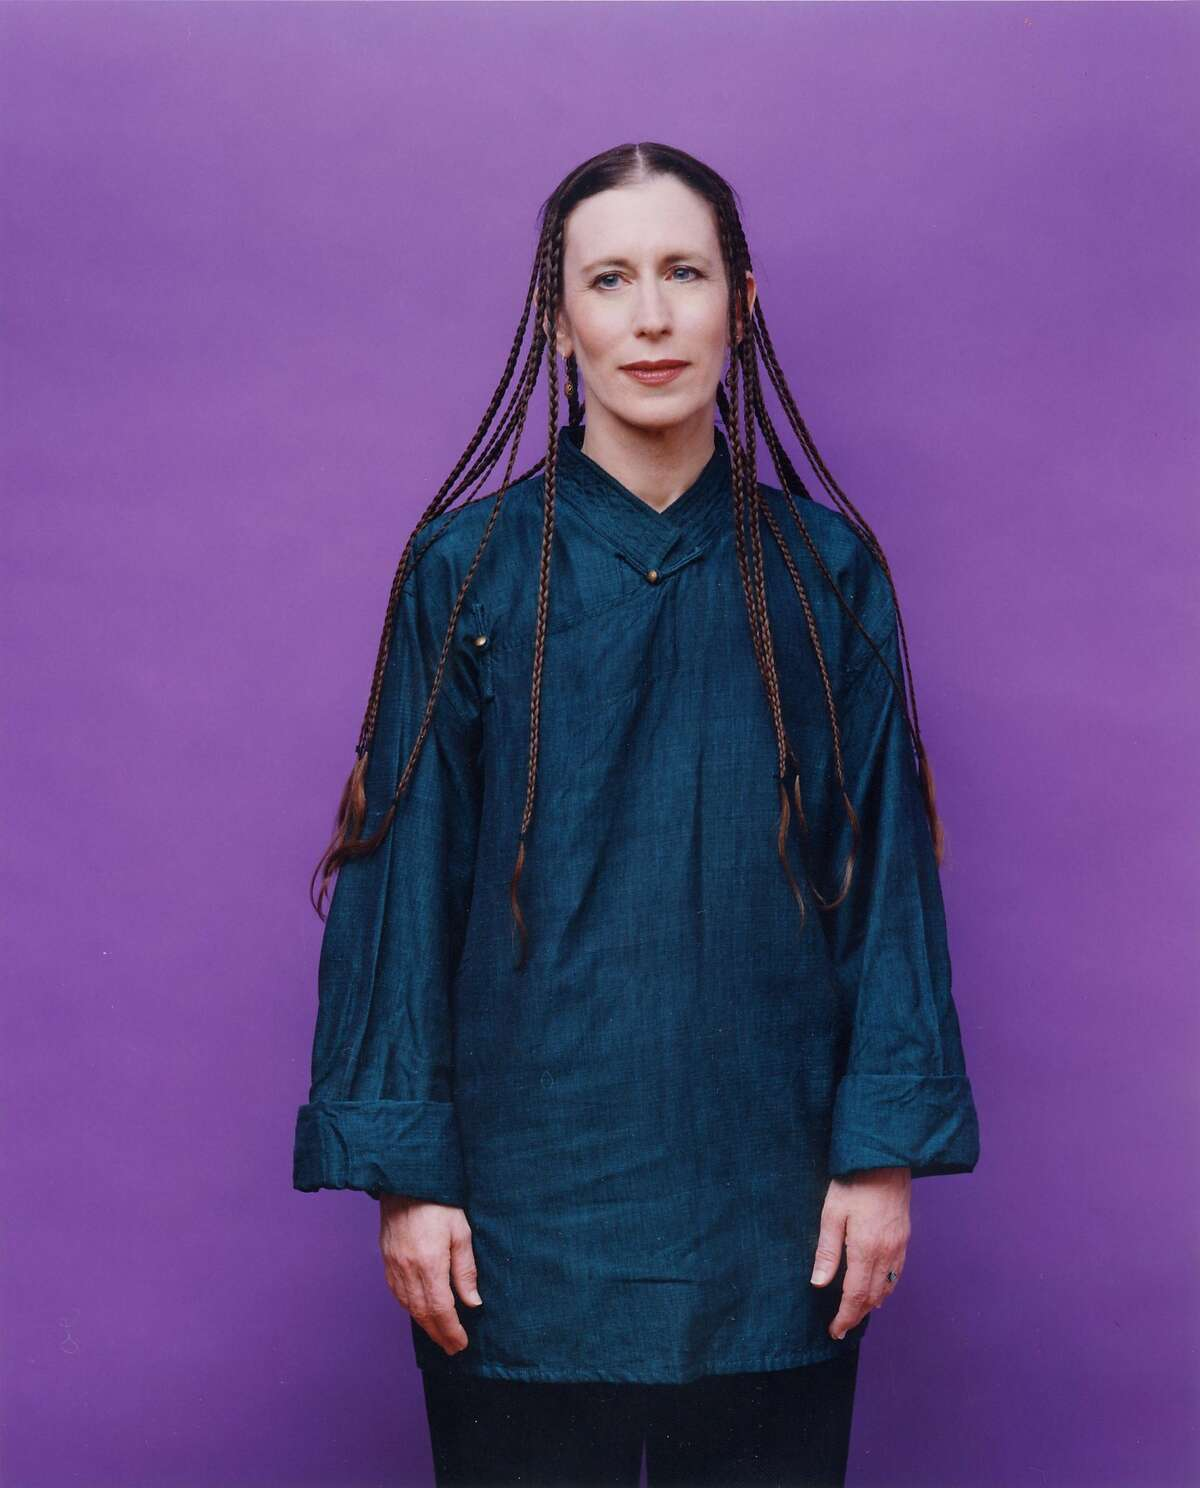 Photo of Meredith Monk. Photo by Jessie FromanRan on: 02-13-2006 Composer Meredith Monk uses the human voice in unique ways in her work.